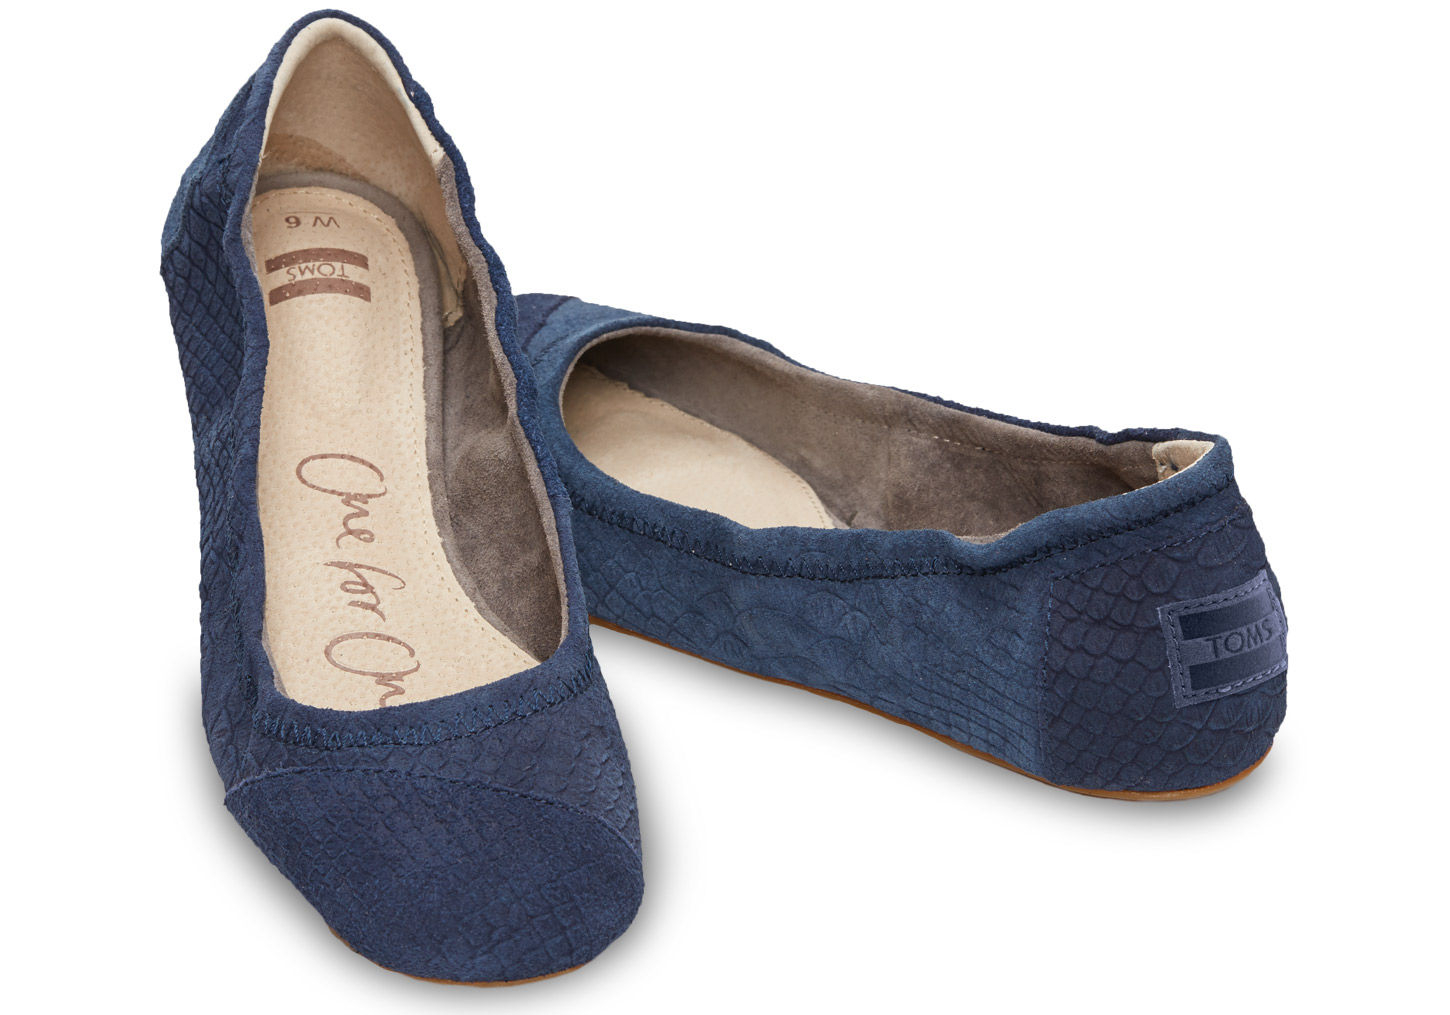 Navy Ballet Flat Shoes